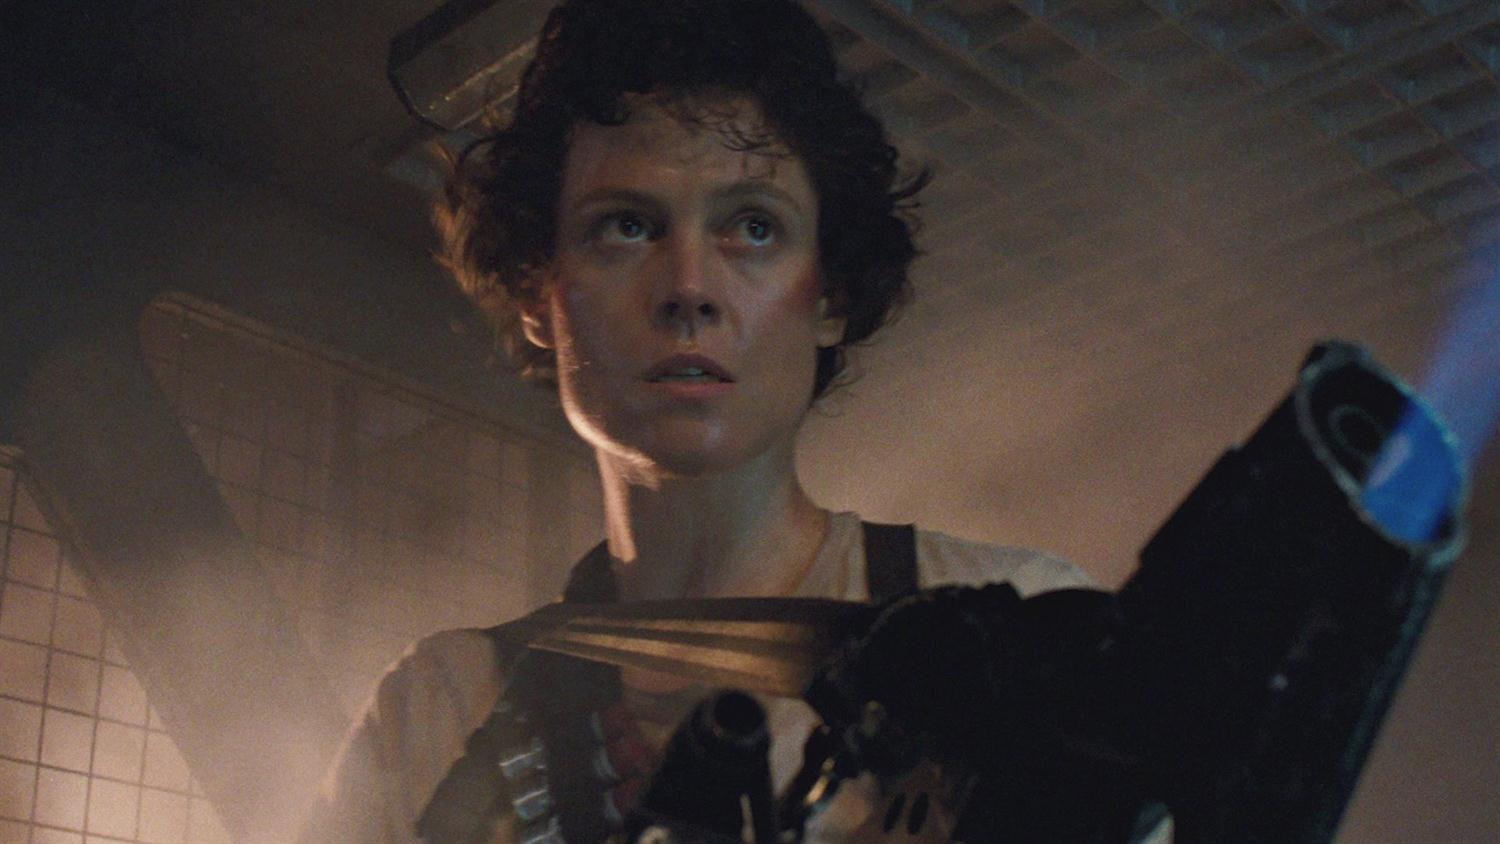 The Top 6 Mothers From Sci-Fi, Fantasy and Horror